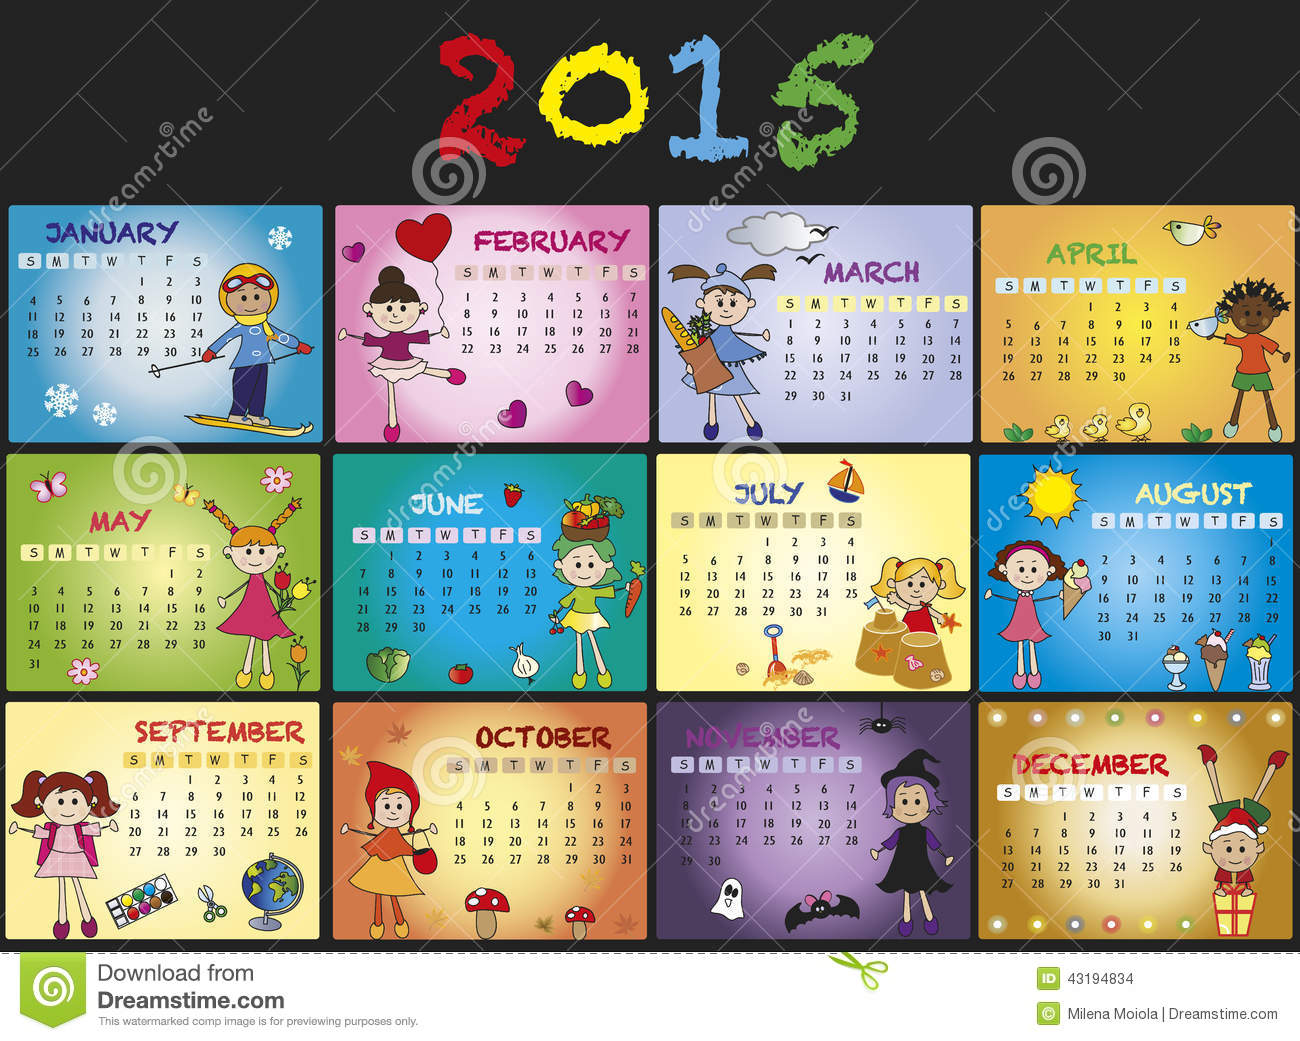 1300 x 1041 jpeg 239kB, Search Results for: Annual Calendar Template